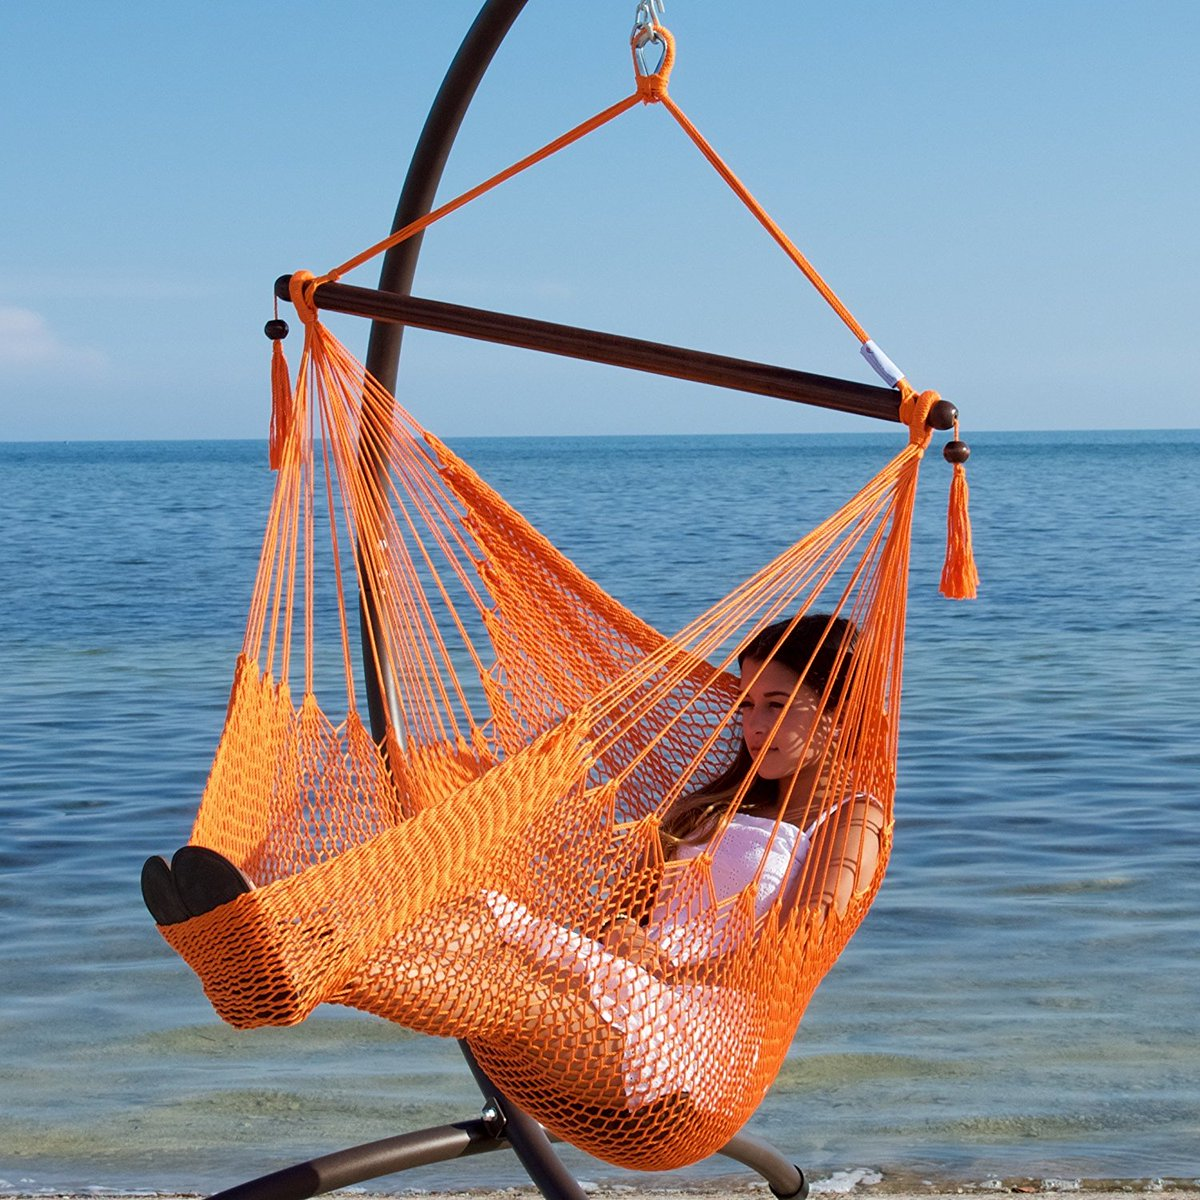 a sunny relaxing weekend on cape cod is even more relaxing with your feet off the ground in one of our costa rican swings pic twitter   qnclesdzhb ptown hammocks   nlhammocks    twitter  rh   twitter